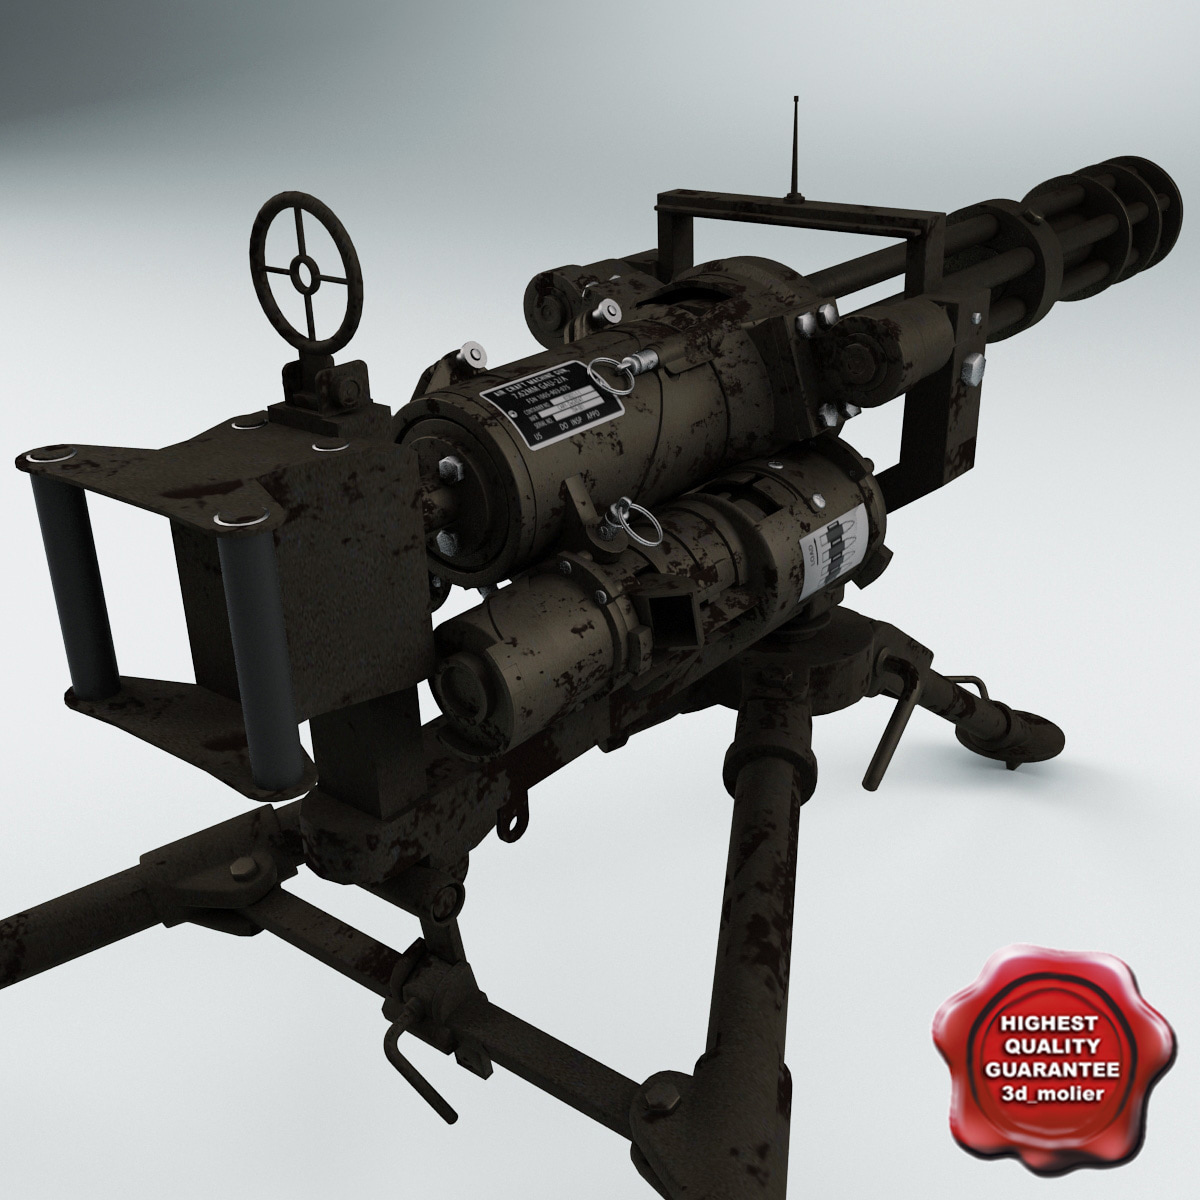 Minigun_M134_and_Tripod_Mount_00.jpg